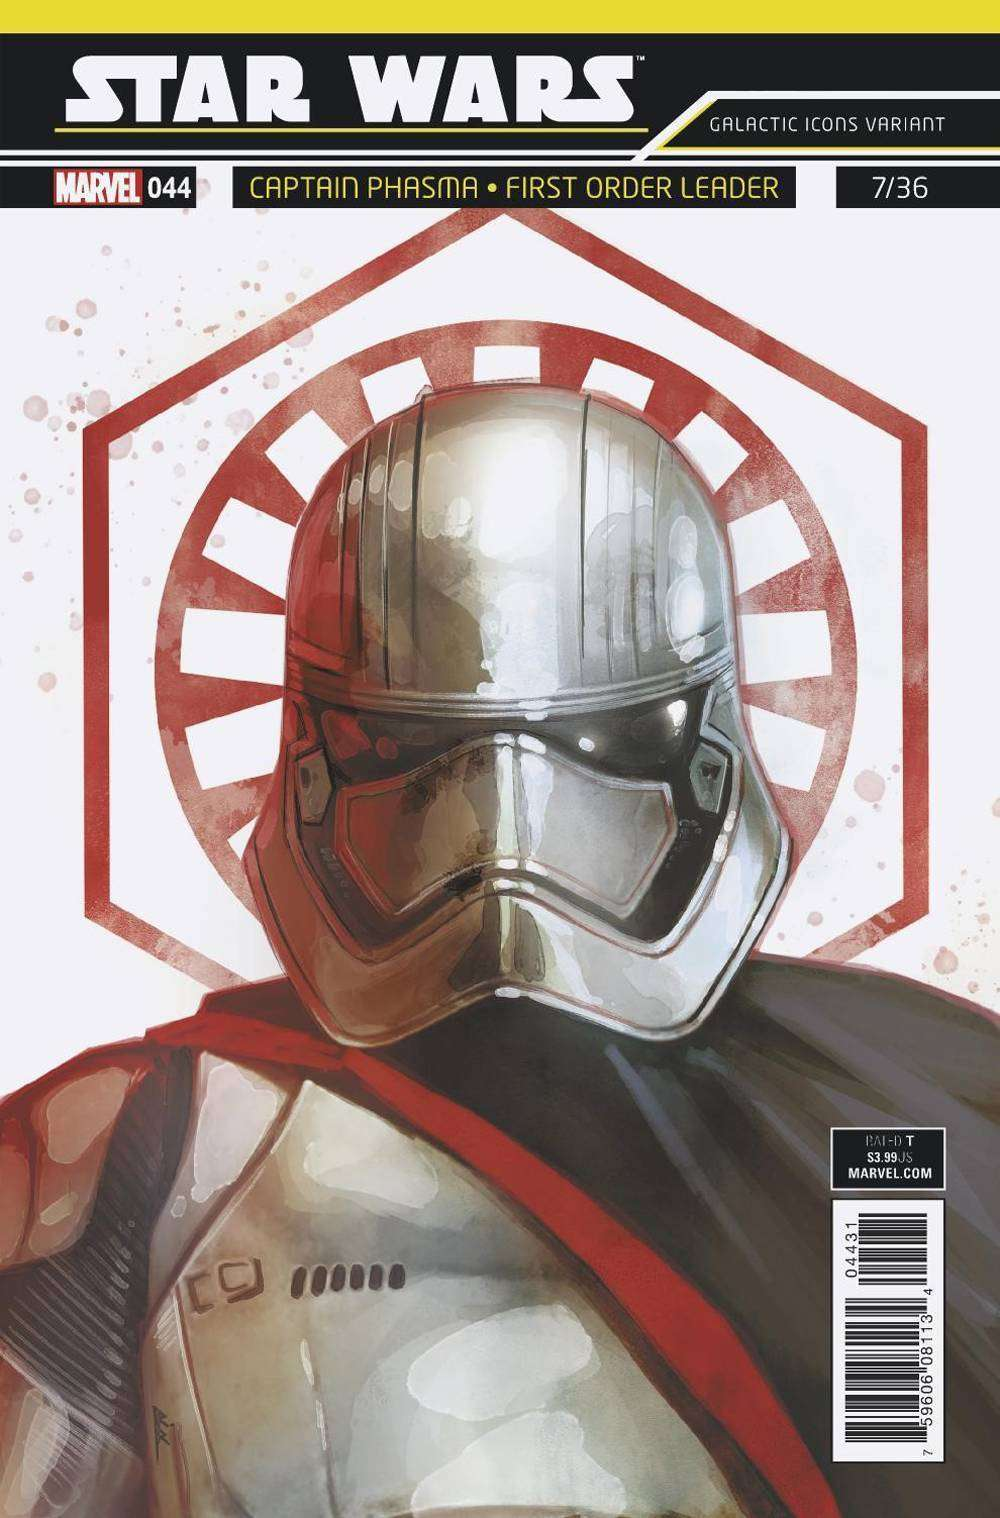 Star Wars #44 Galactic icon: Captain Phasma